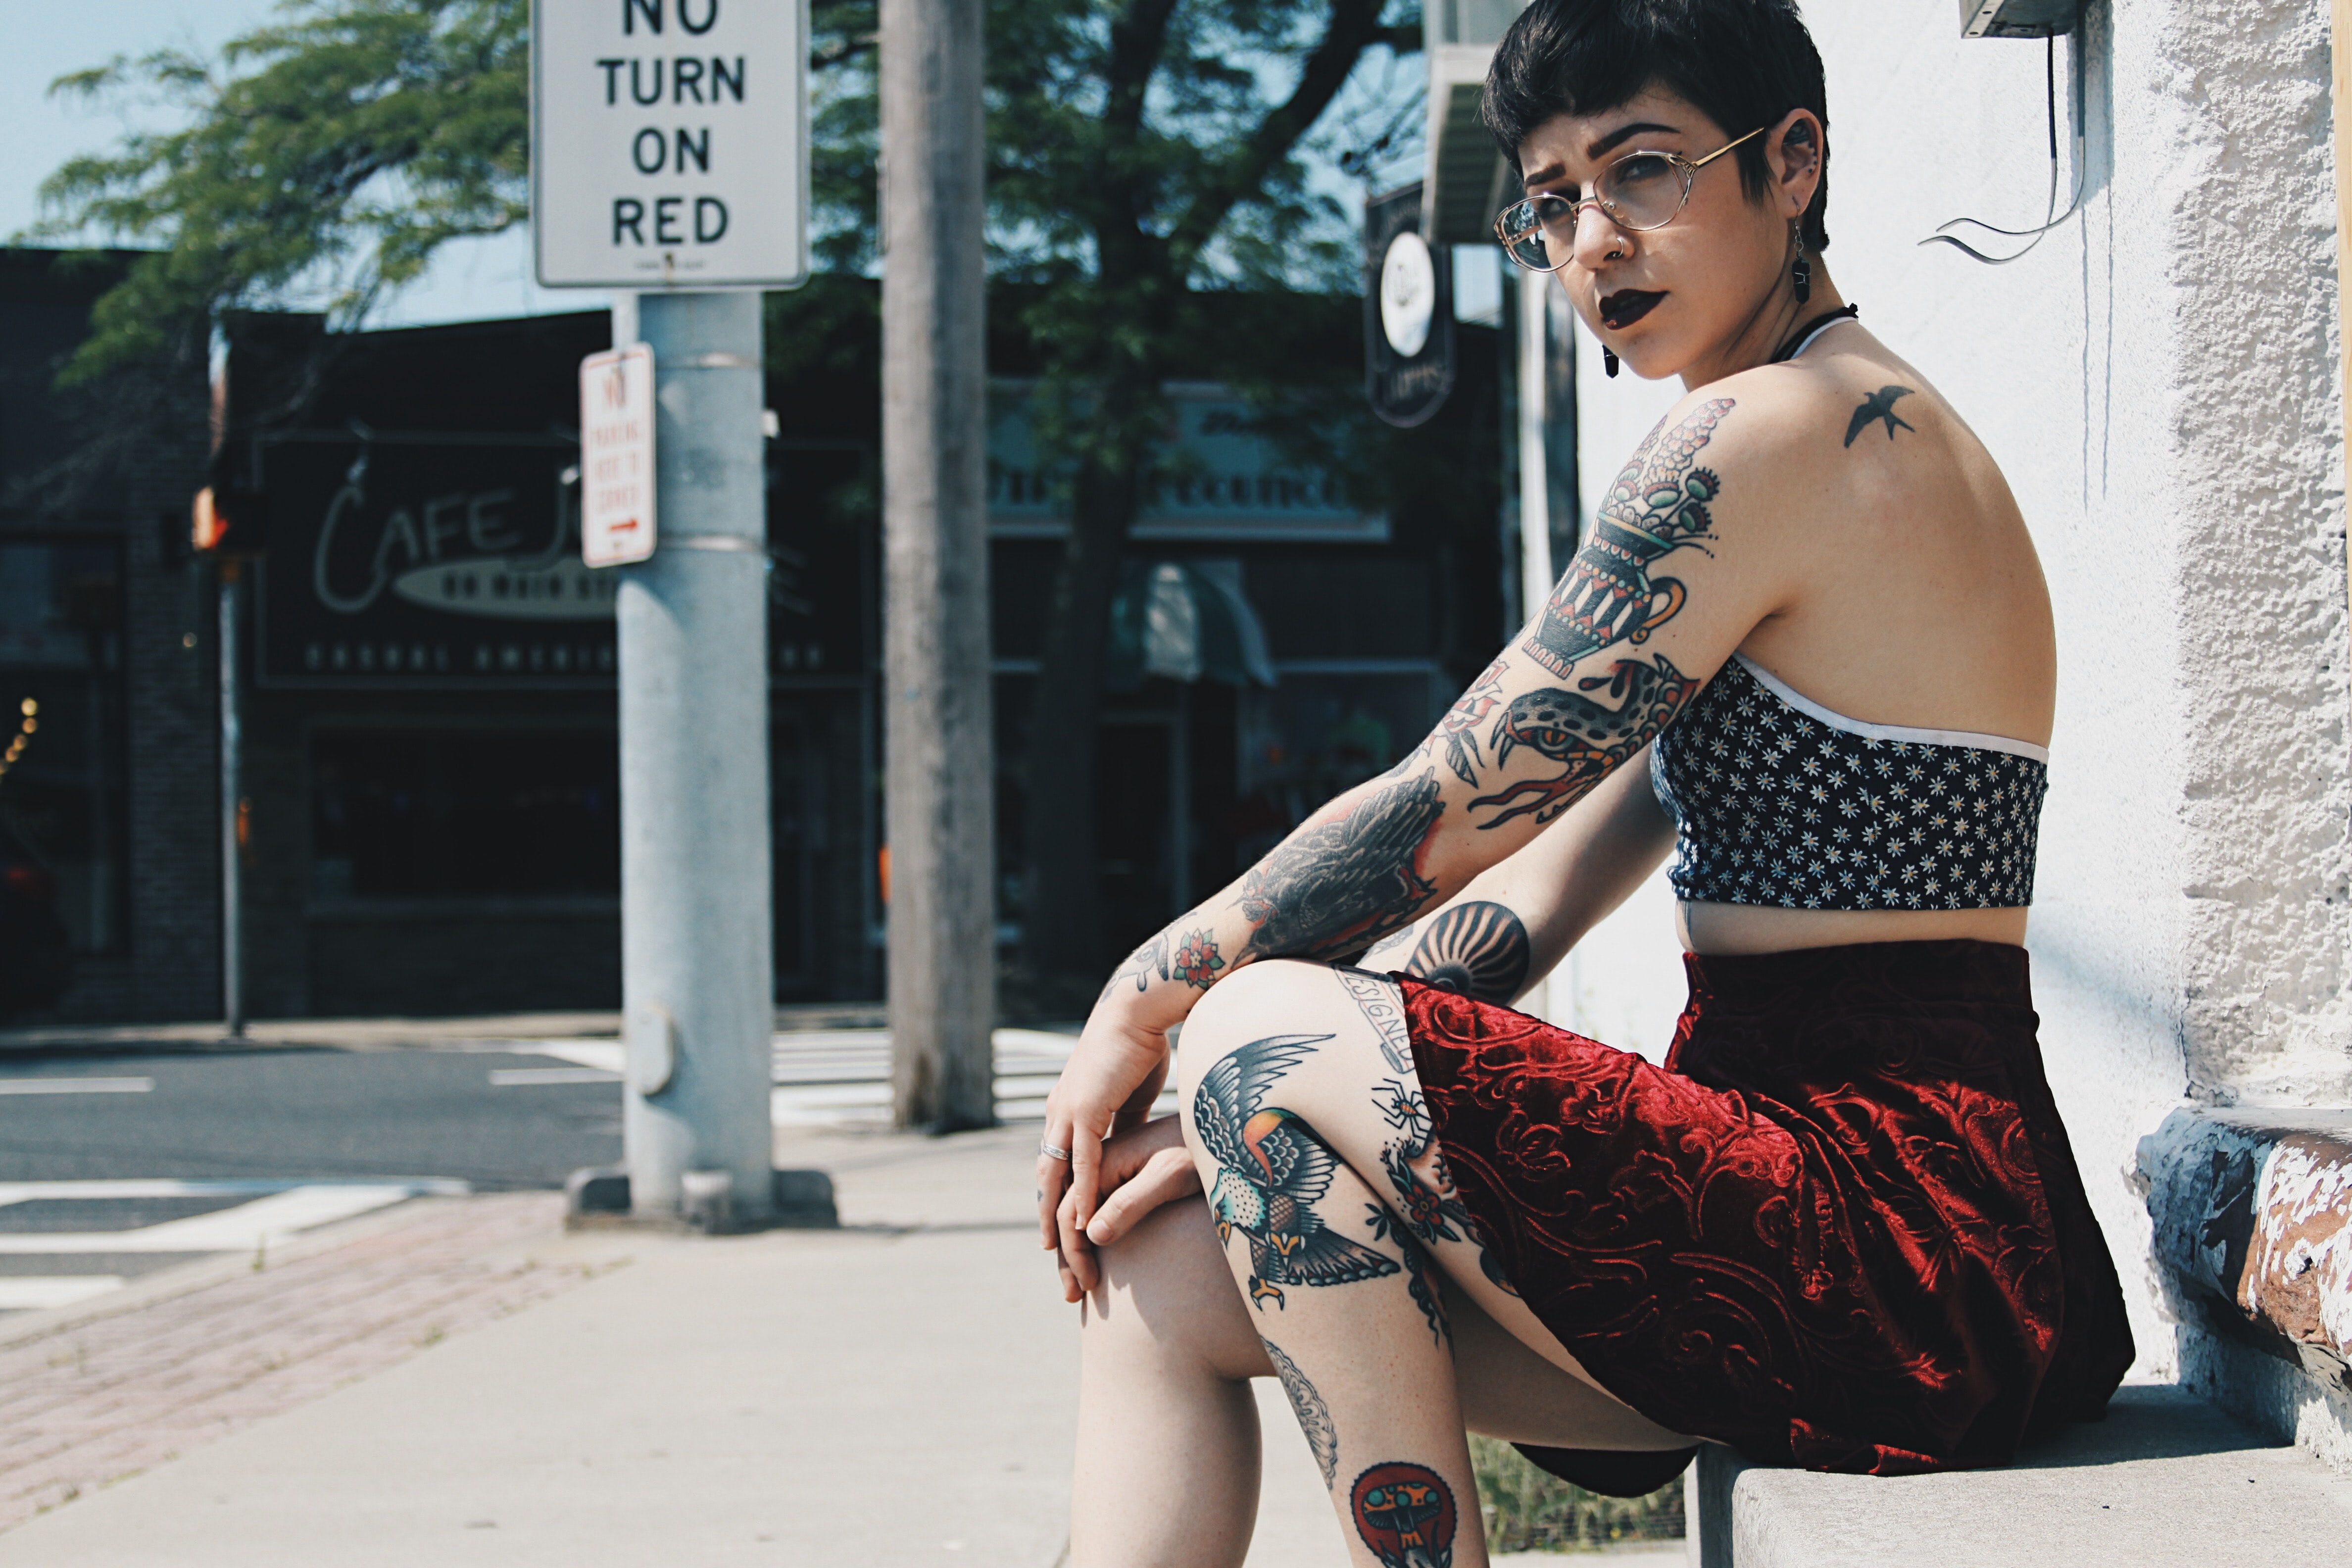 Woman with edgy tattoos wearing a skirt sits on a bench outside